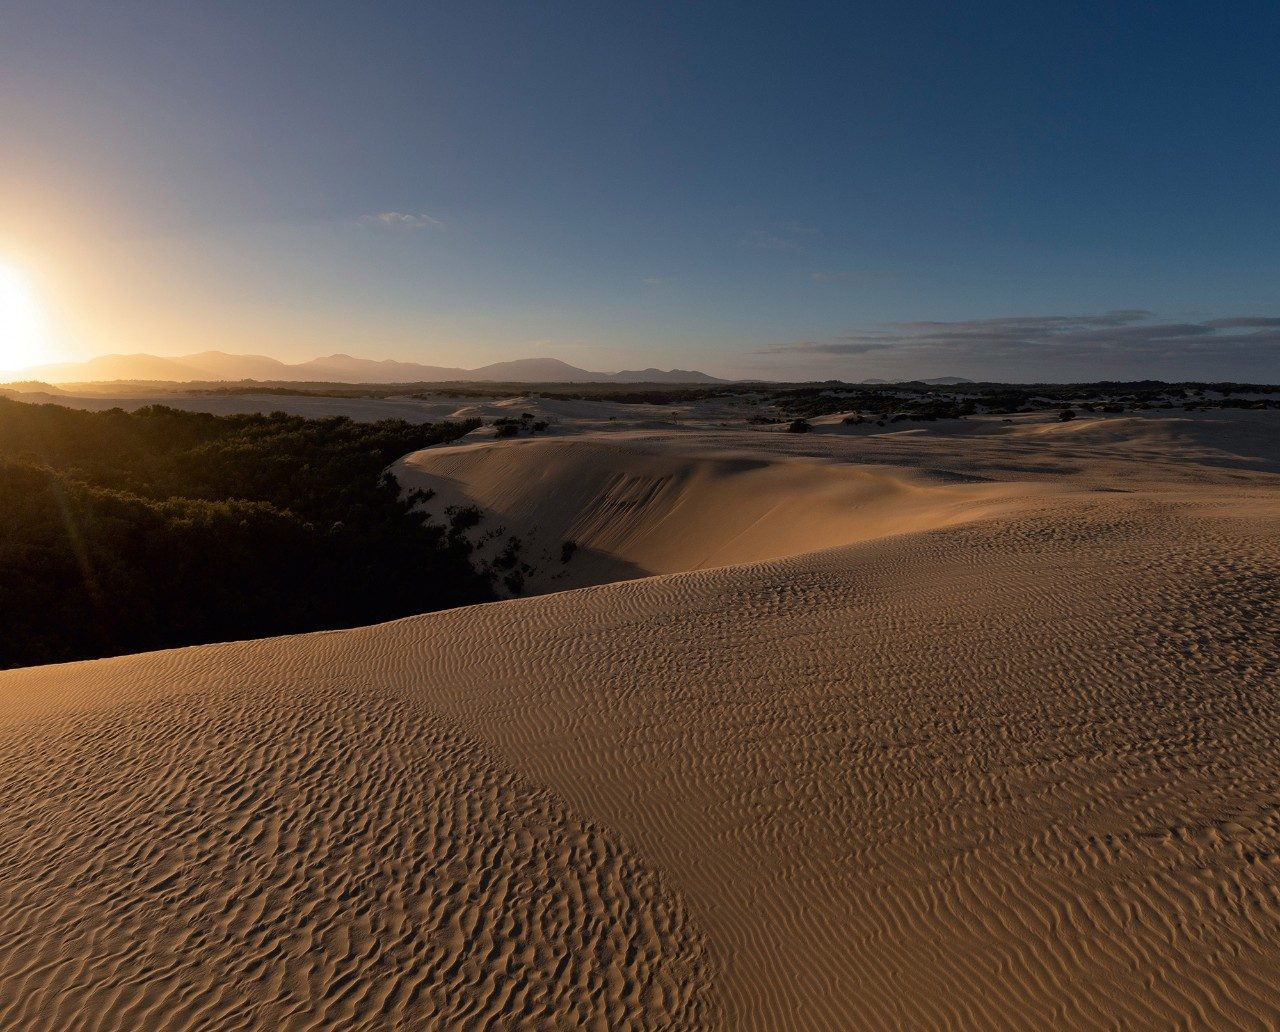 Sand dunes, Wilson's Promontory National Park, Victoria